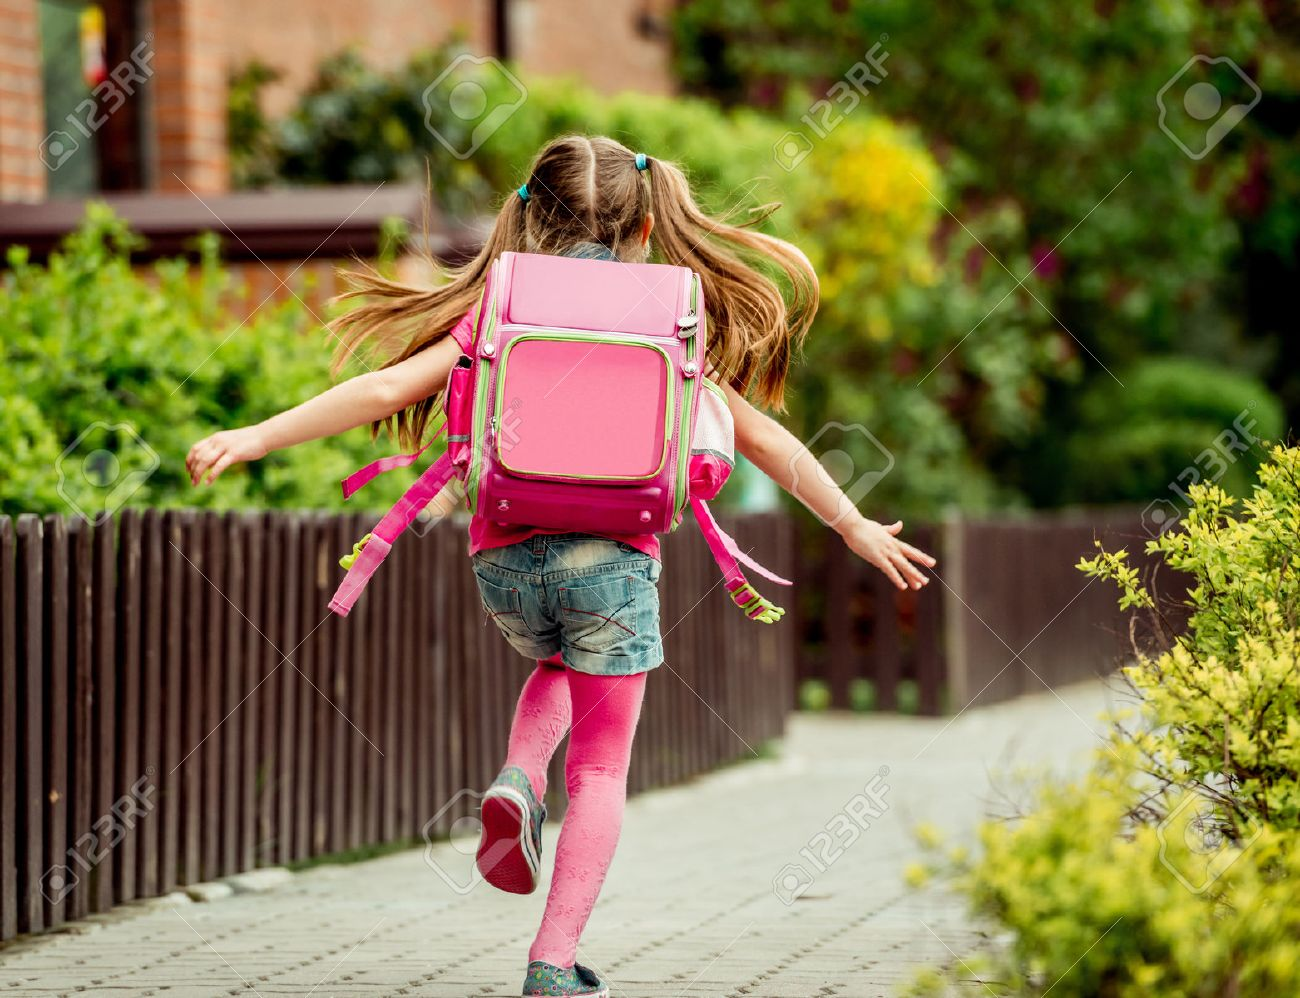 little girl with a backpack run to school. back view - 43021551